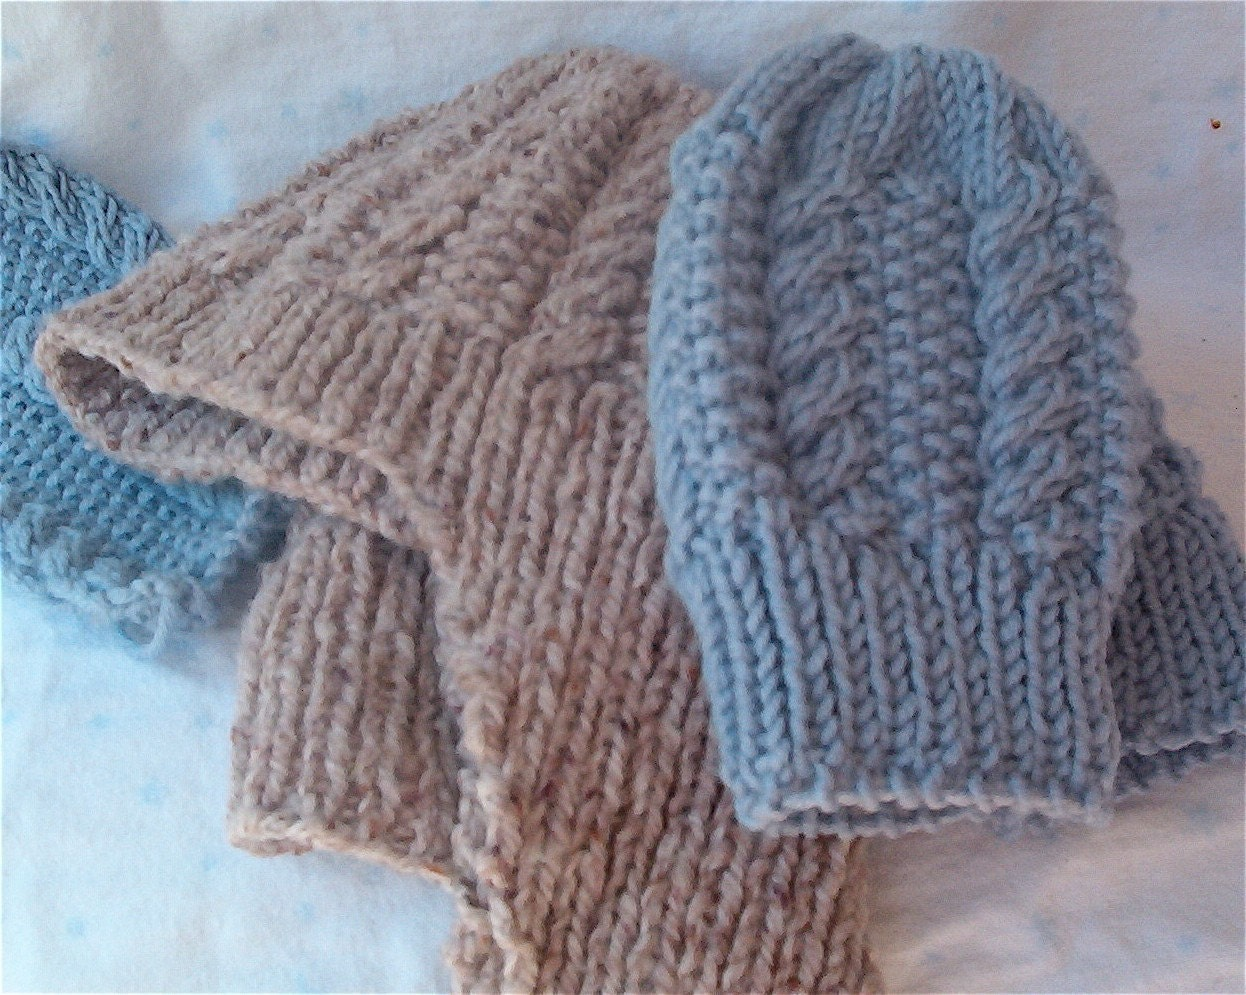 Moss Stitch Knitting Pattern Scarf : Cable and Moss Stitch Baby Beanie Scarf and Mittens Set